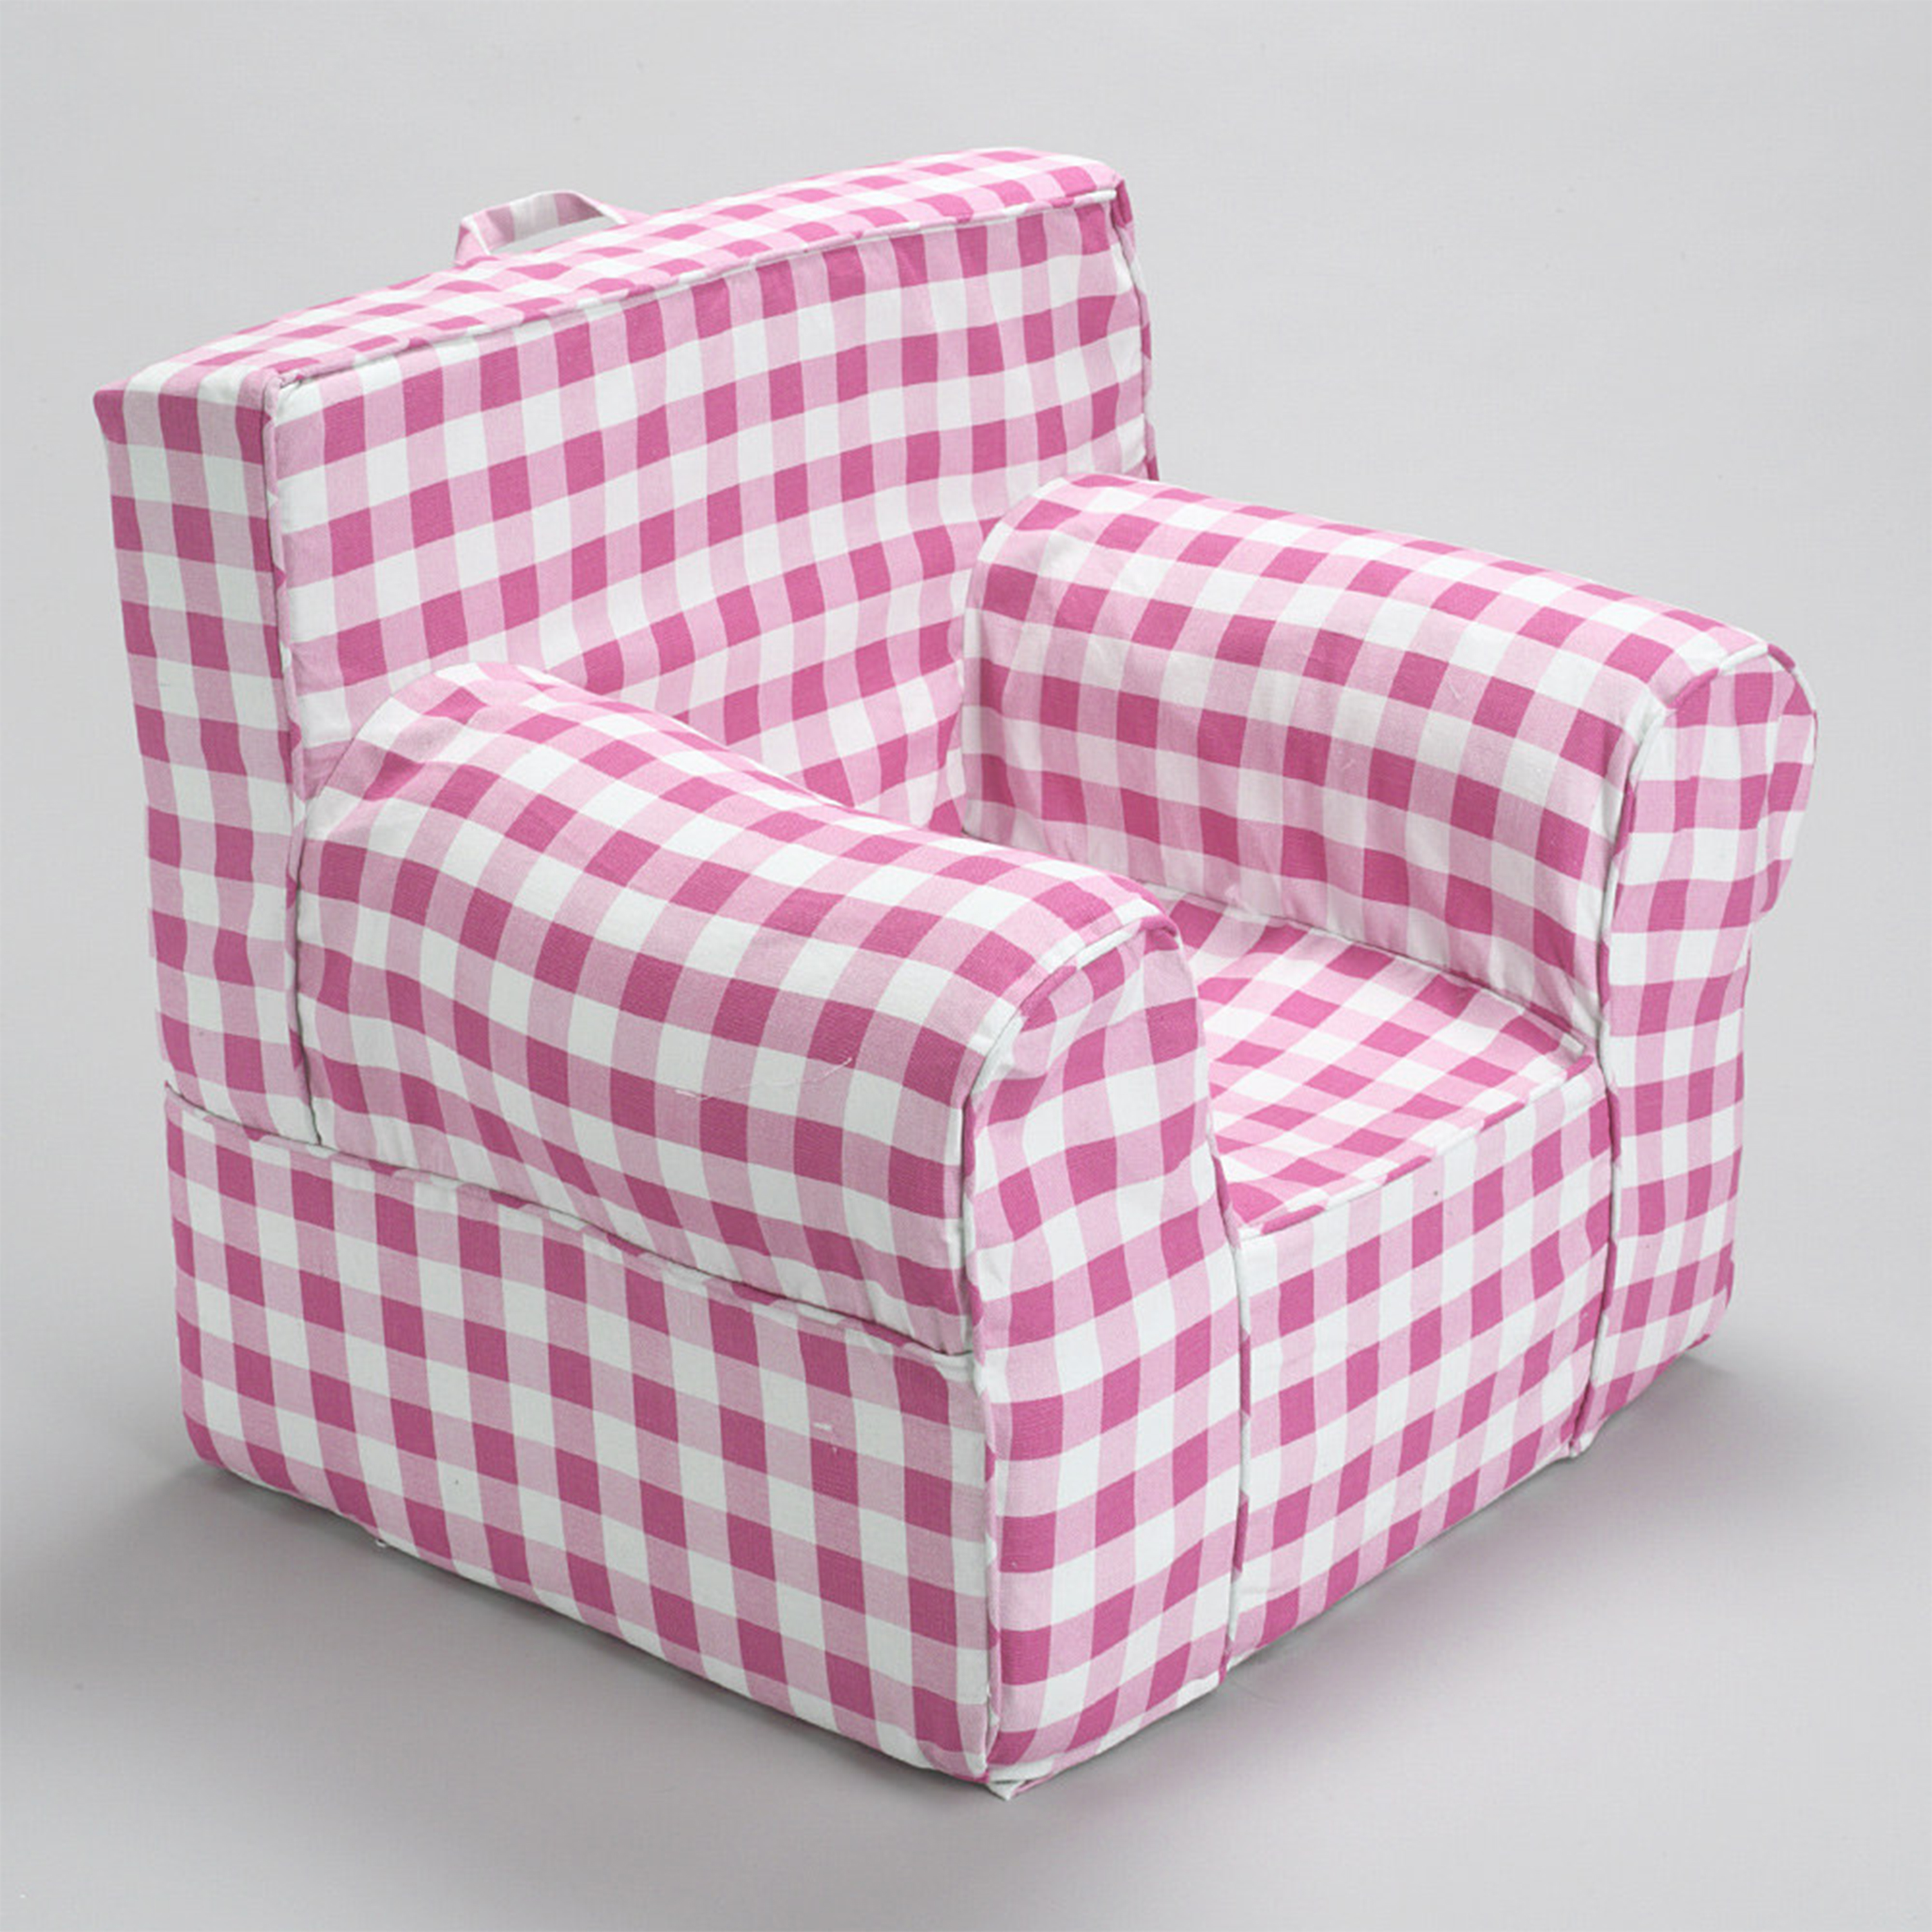 INSERT FOR POTTERY BARN ANYWHERE CHAIR INCLUDES PINK GINGHAM SLIP